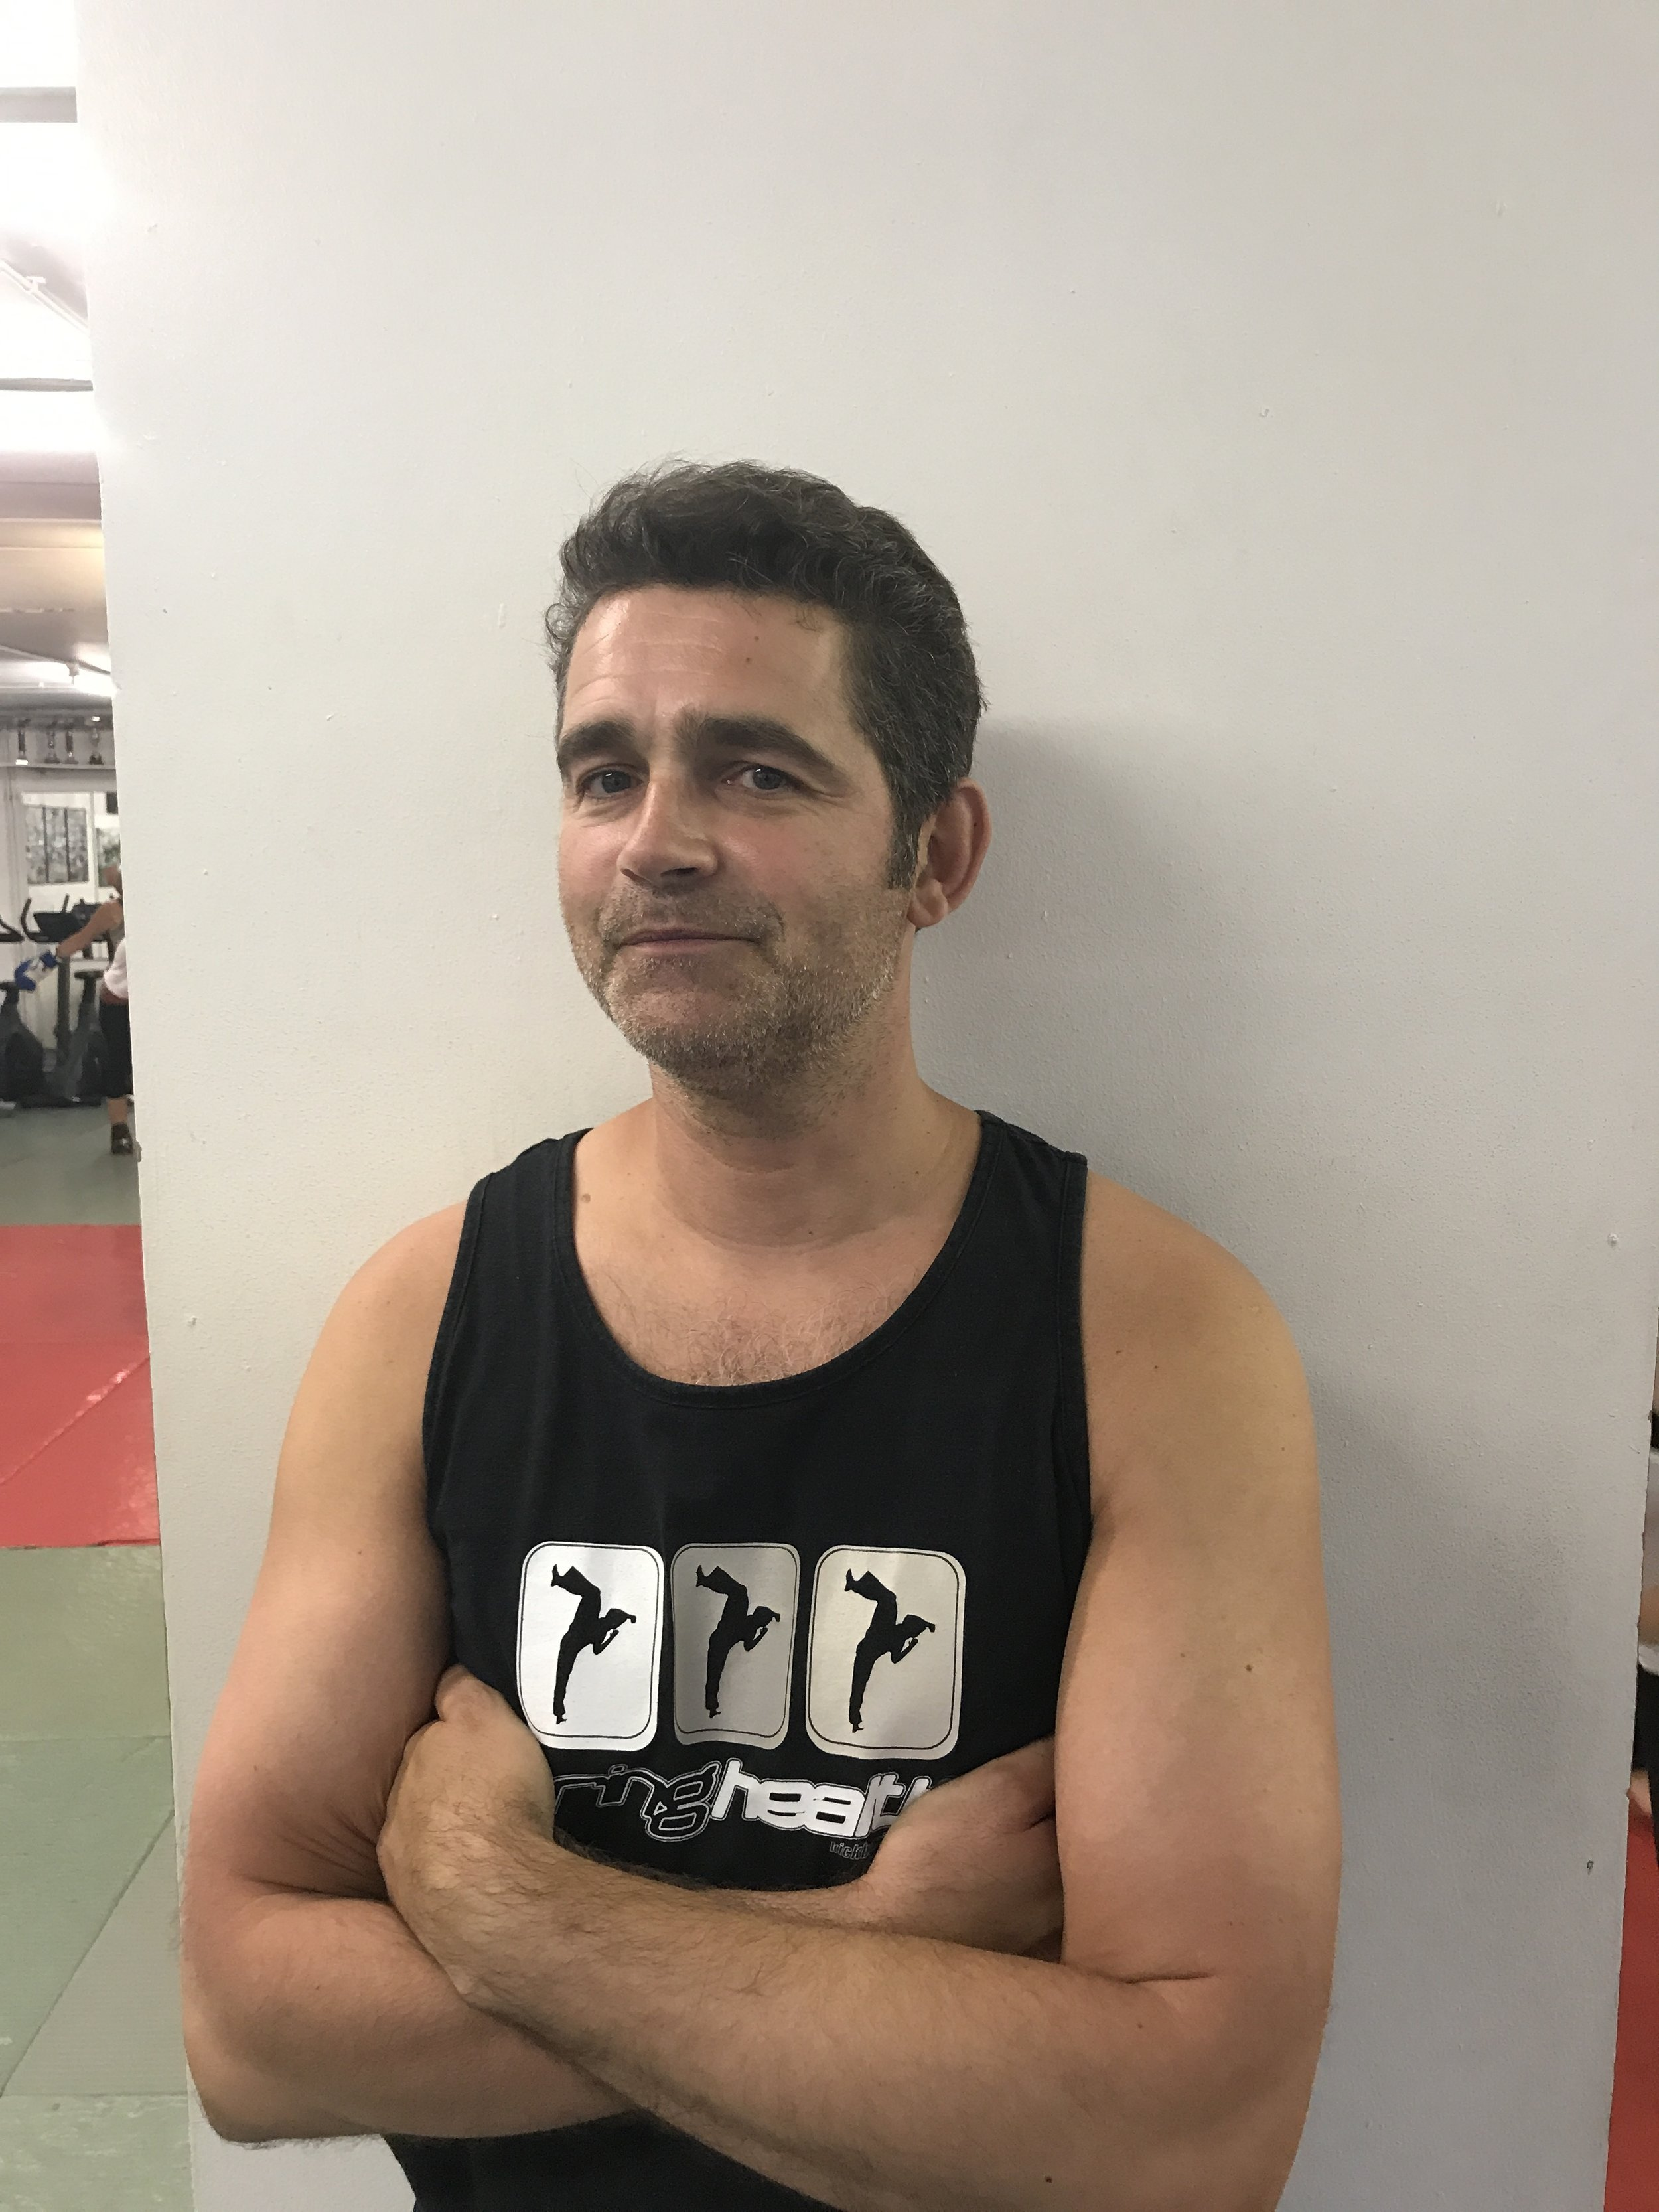 Ali Snodgrass - Senior InstructorAli first started kickboxing with Springhealth 18 years ago and during this time he has become an asset to the team regularly teaching several classes a week. Ali focuses on providing his students with clear instruction to achieve a high technical standard. He's an advocate for good technical form and has limitless patience with his students. His classes are fast paced, will keep you on your toes and are always fun.